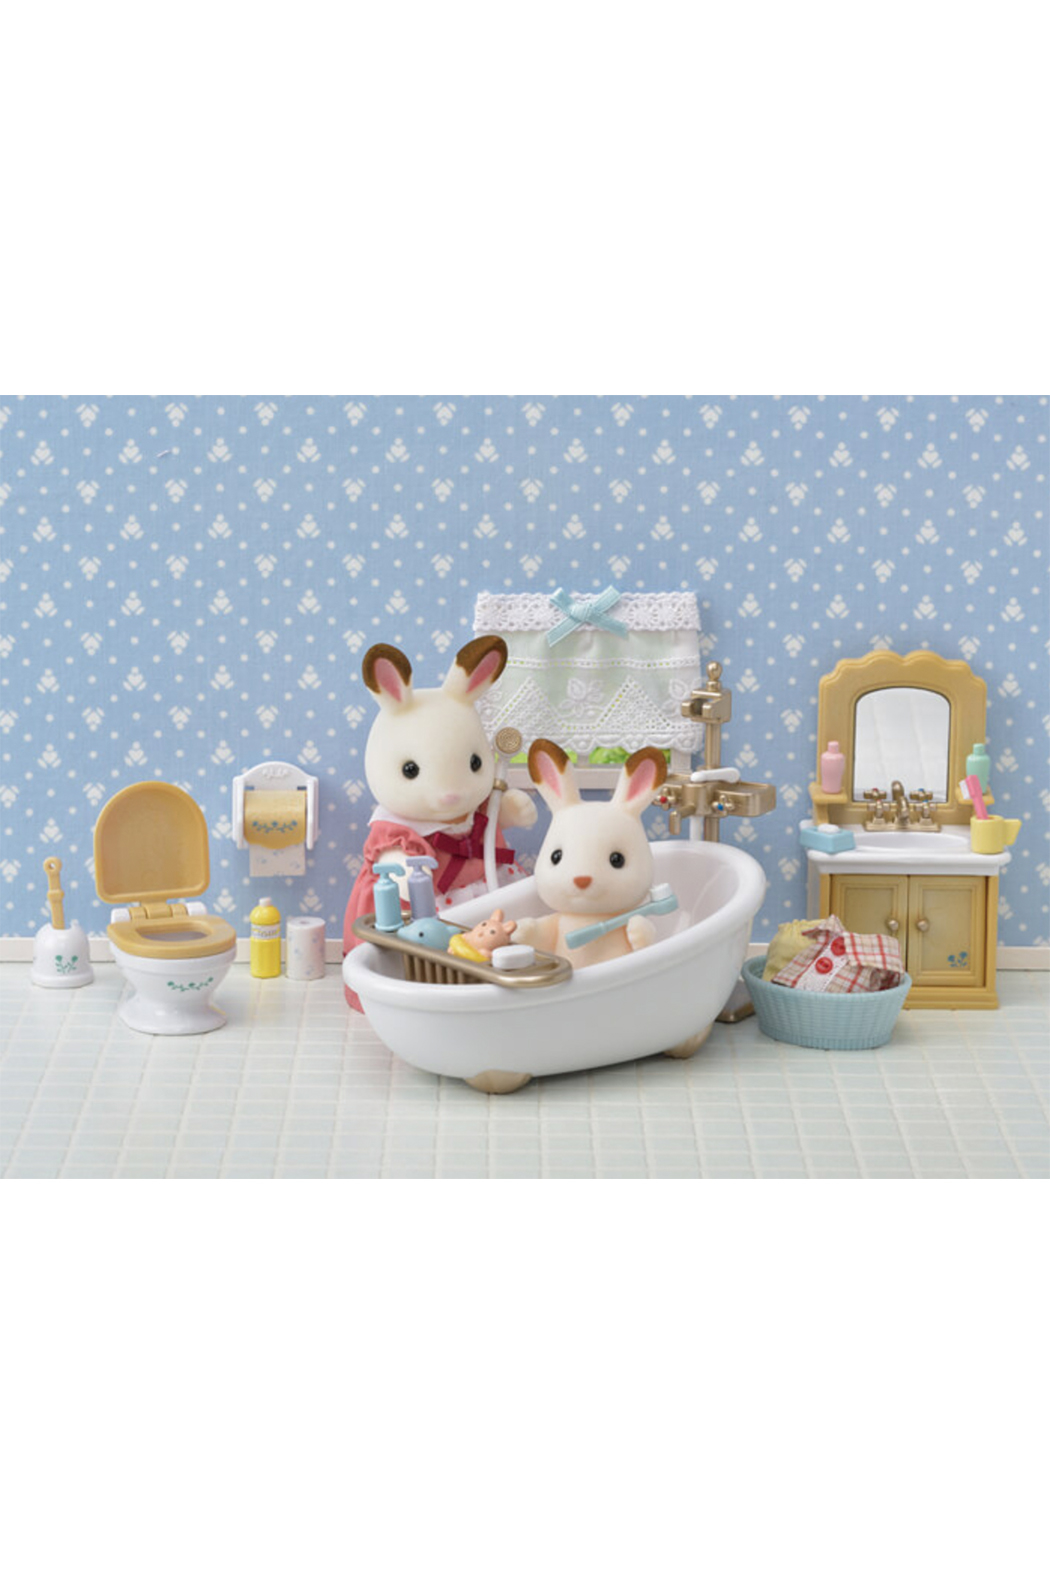 Calico Critters Country Bathroom Set - Main Image